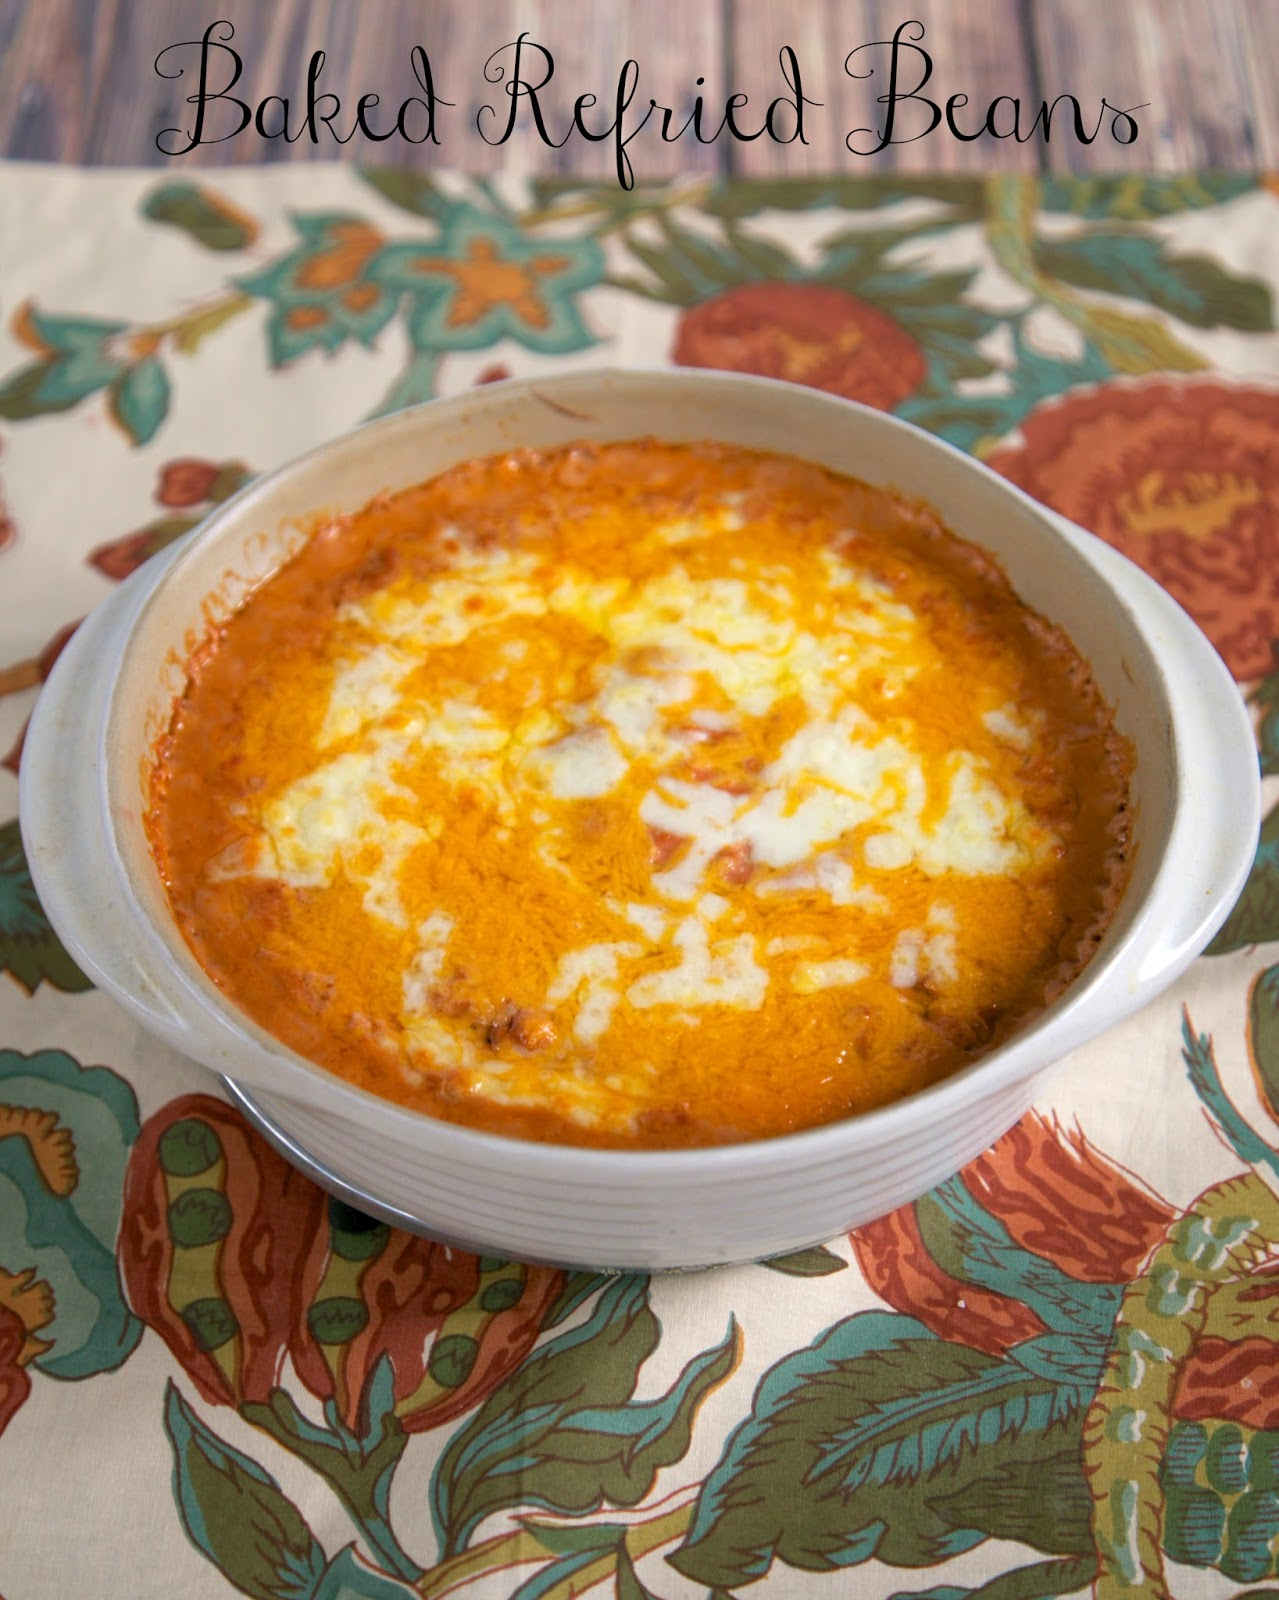 The BEST Baked Refried Beans Recipe - beans, sour cream and salsa - ready in minutes! My husband hates refried beans, but gobbled these up! Also great as a dip!